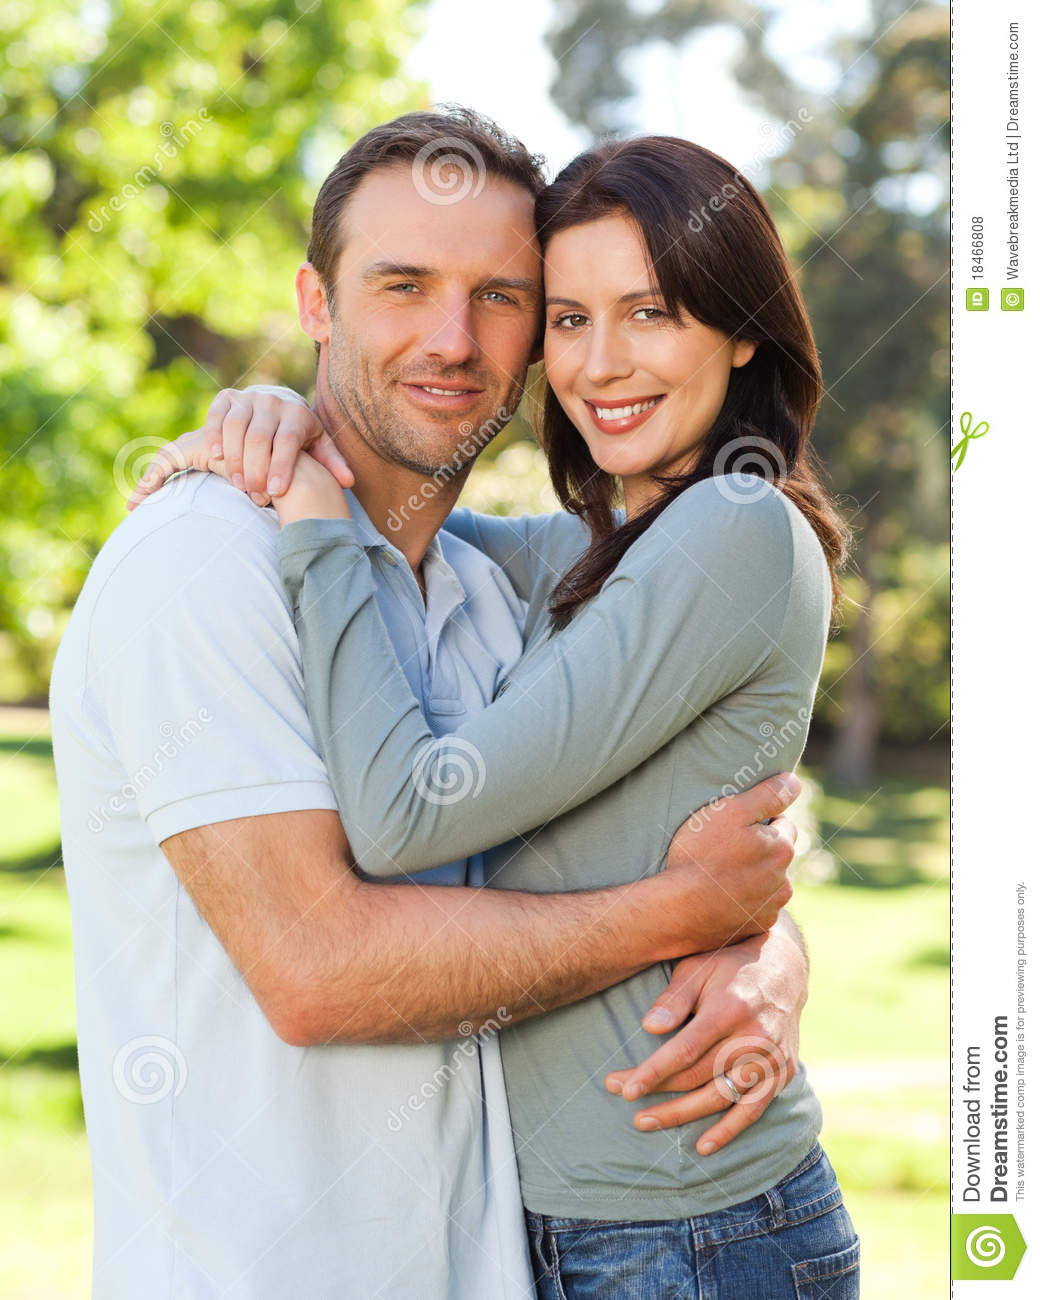 Radiant Couple Hugging In The Park Stock Photo